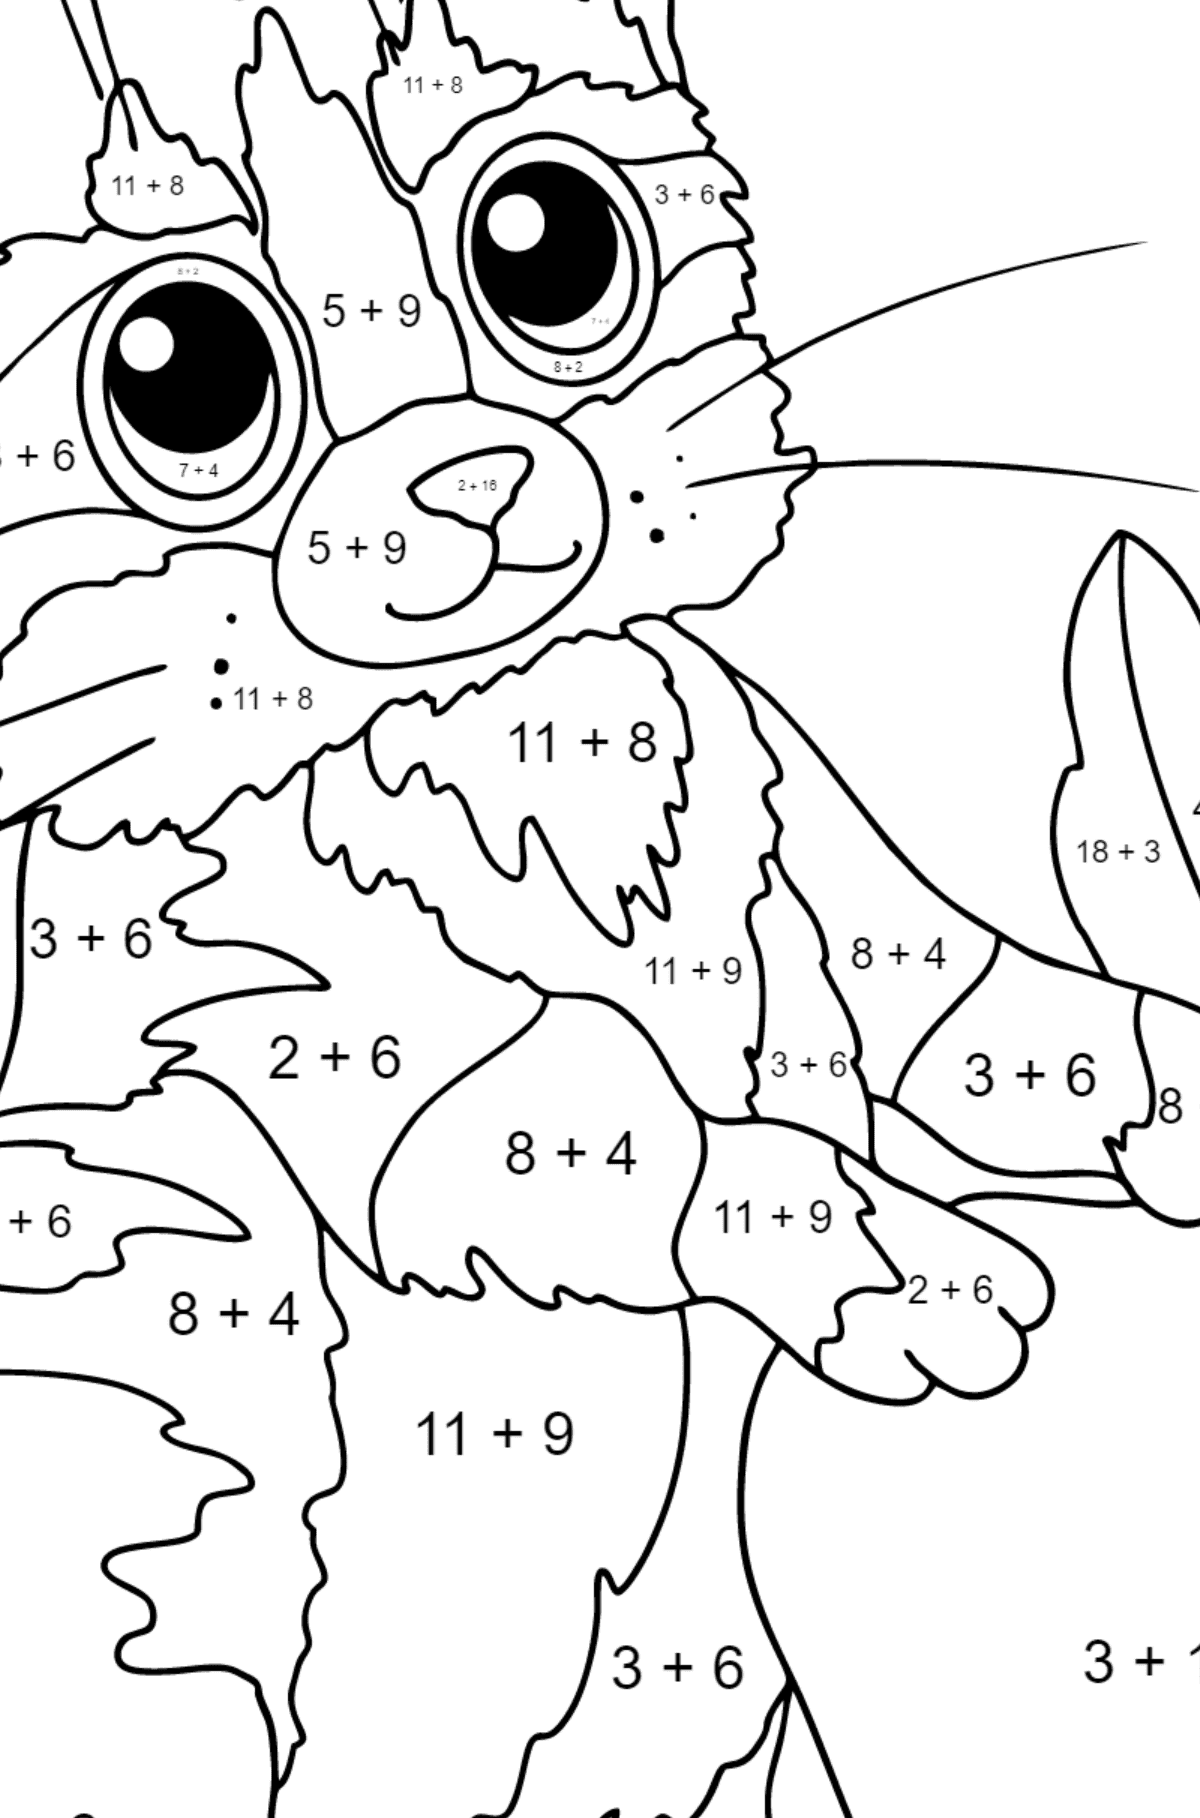 Coloring Page - A Cat and a Ripe Apple - Math Coloring - Addition for Kids